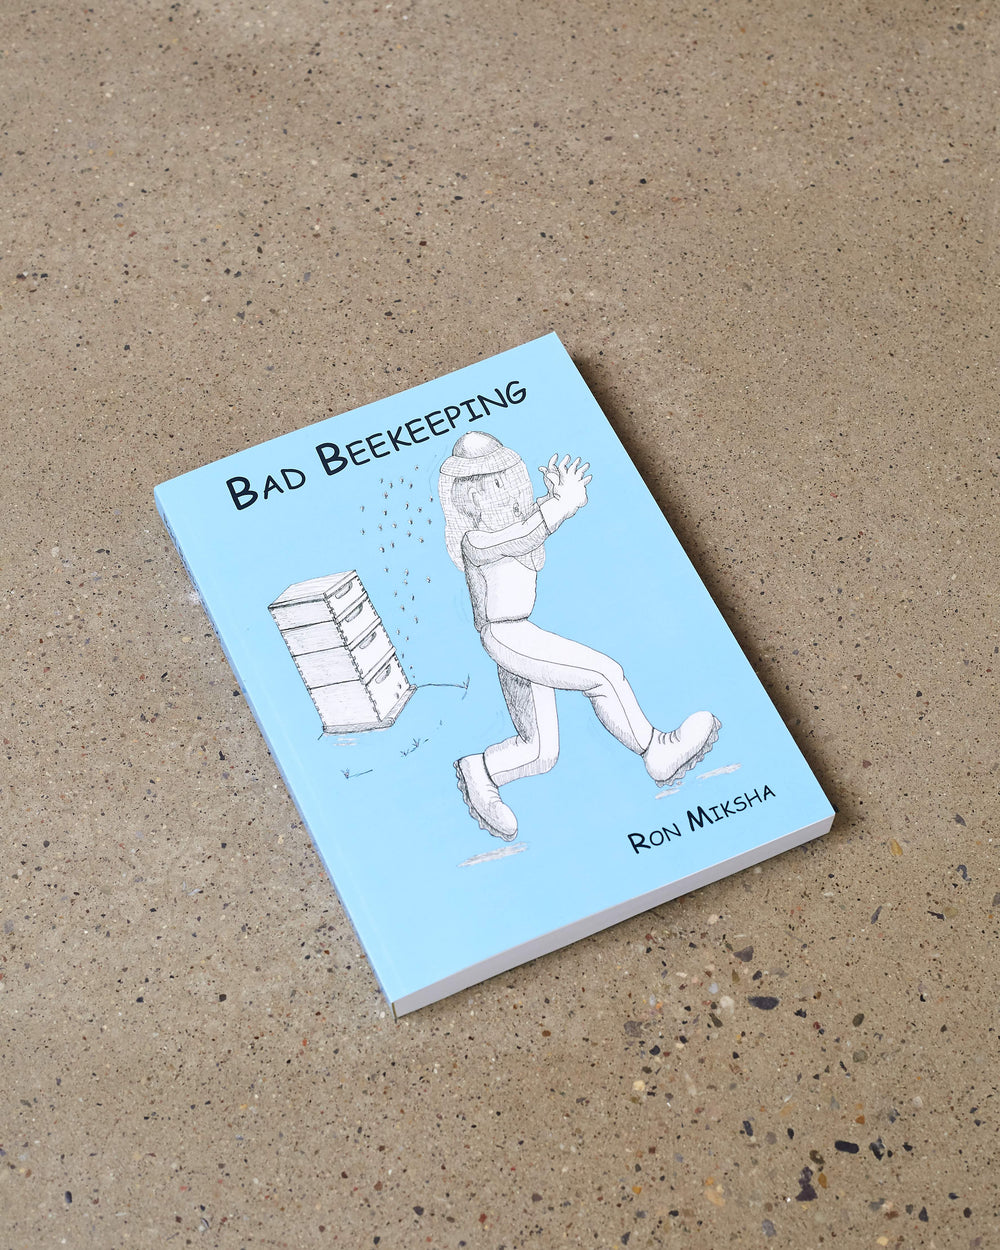 Bad Beekeeping by Ron Miksha